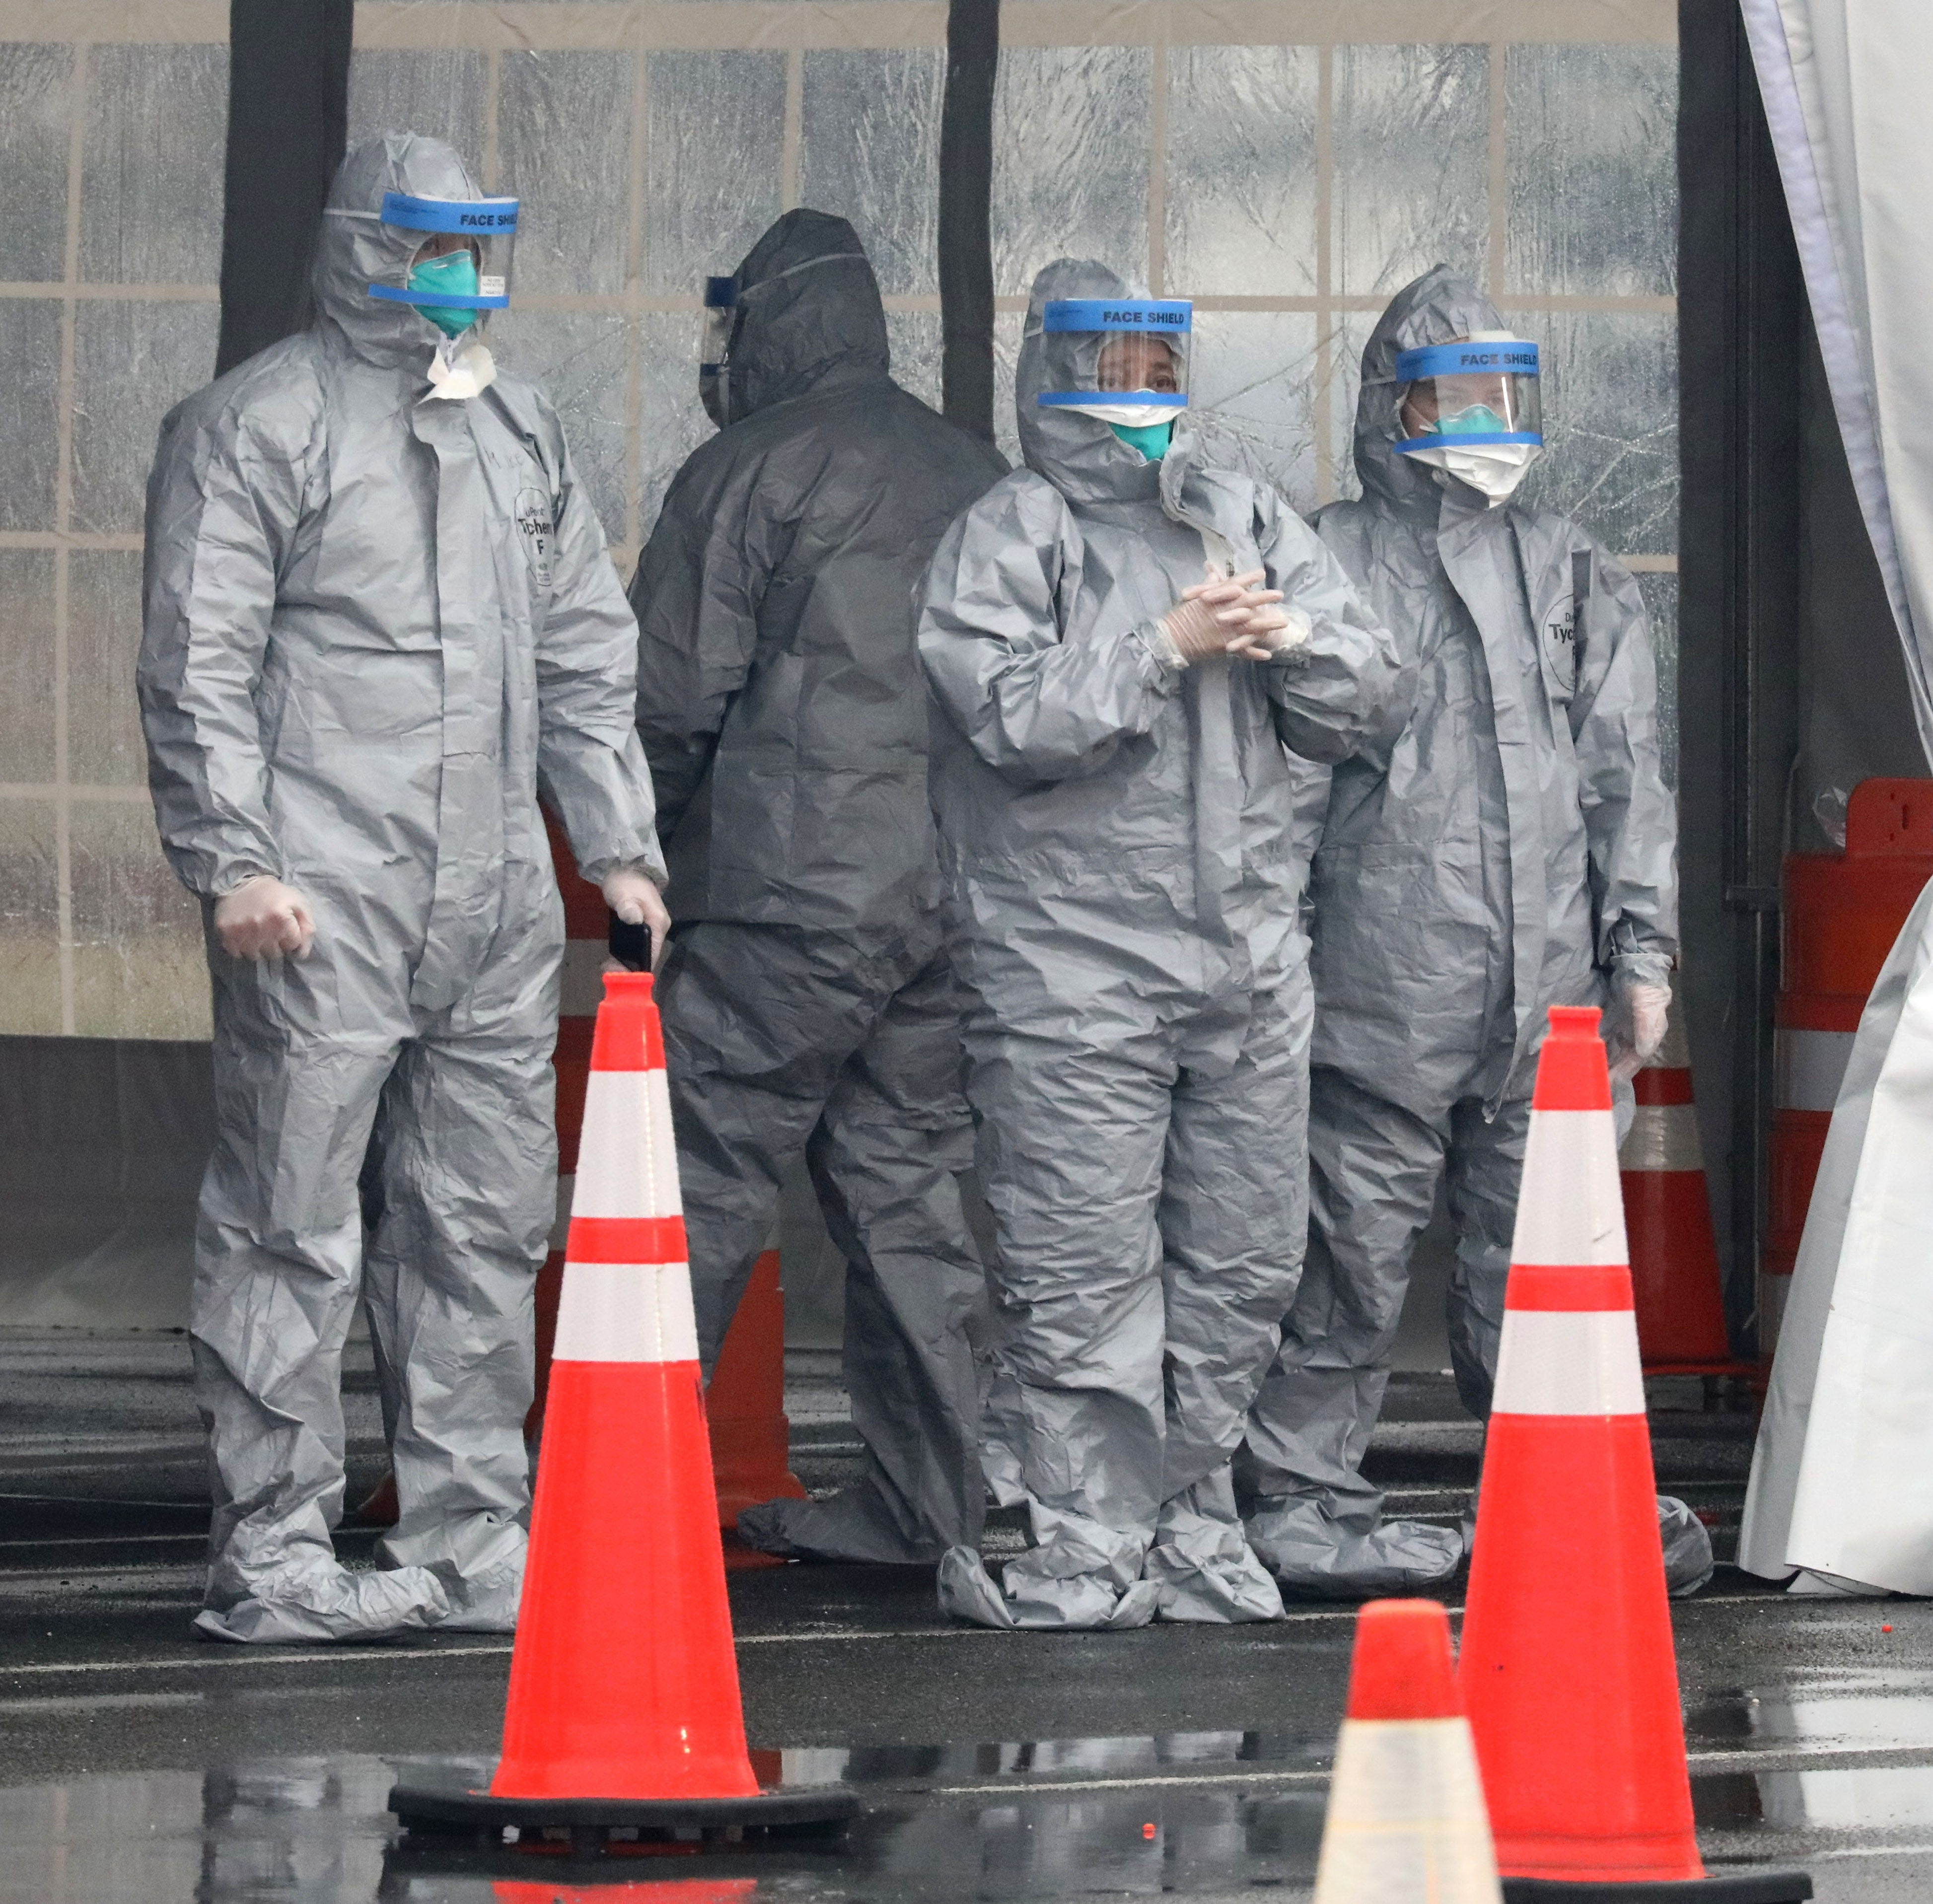 Workers in protective clothing wait for cars to arrive at Glen Island Park in New Rochelle, as New York State's first drive through COVID-19 mobile testing center opens, March 13, 2020.